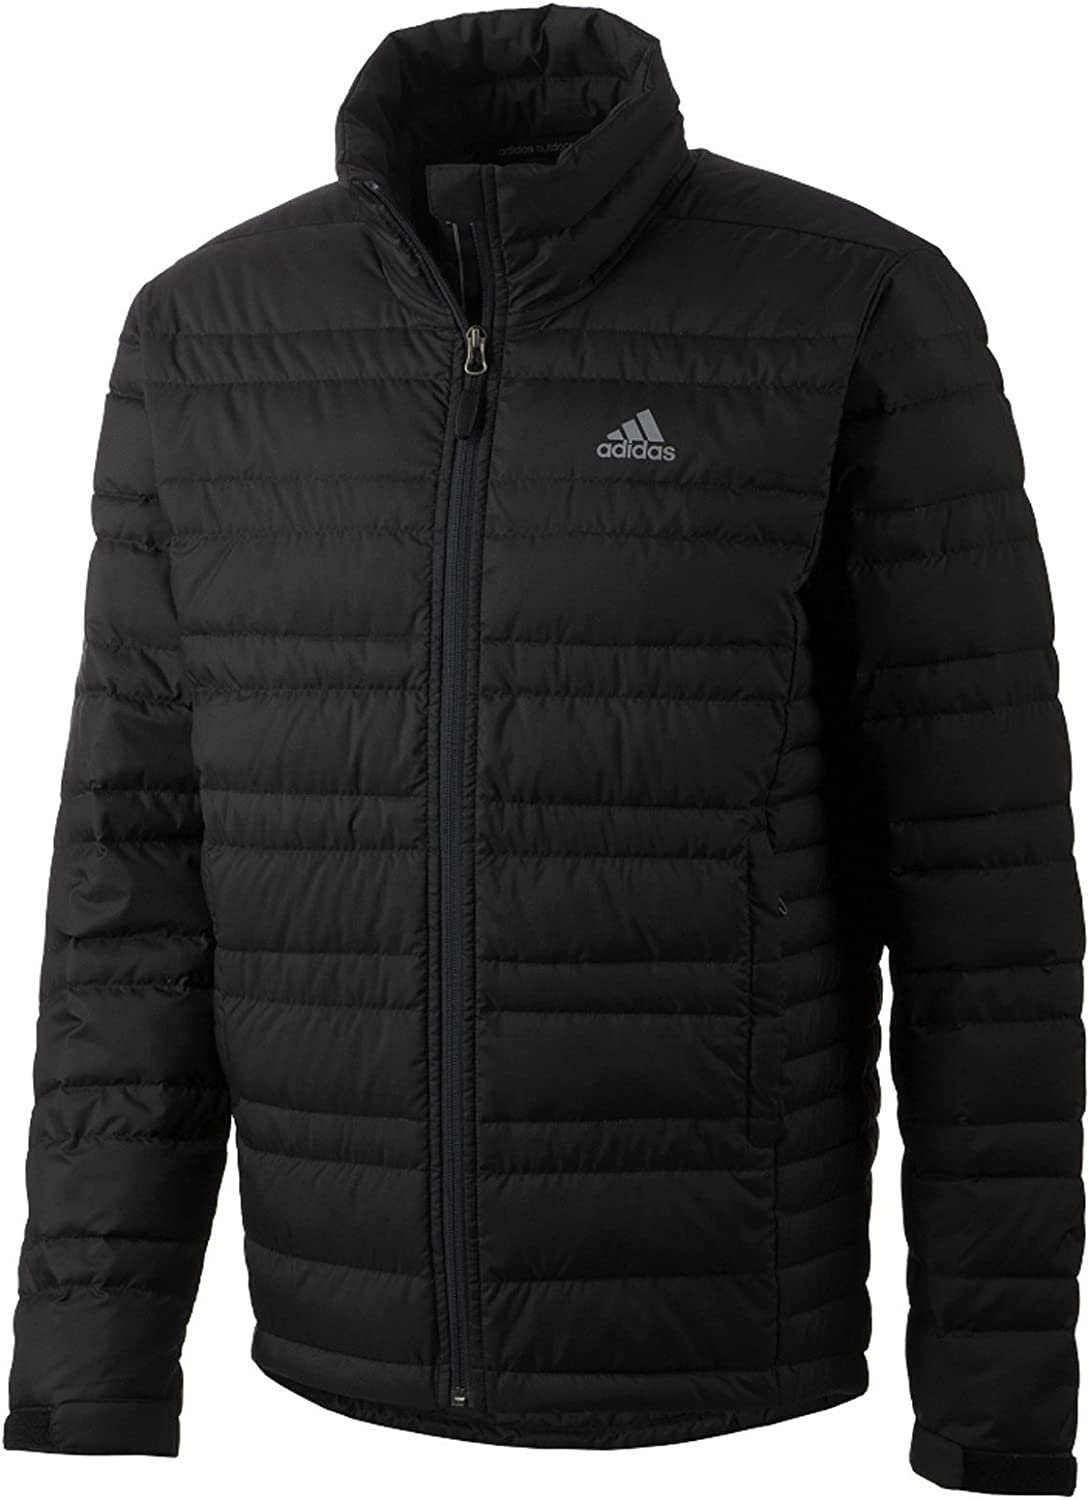 Adidas Outdoor Hike Light Down Jacket 2  Men's Black  Small